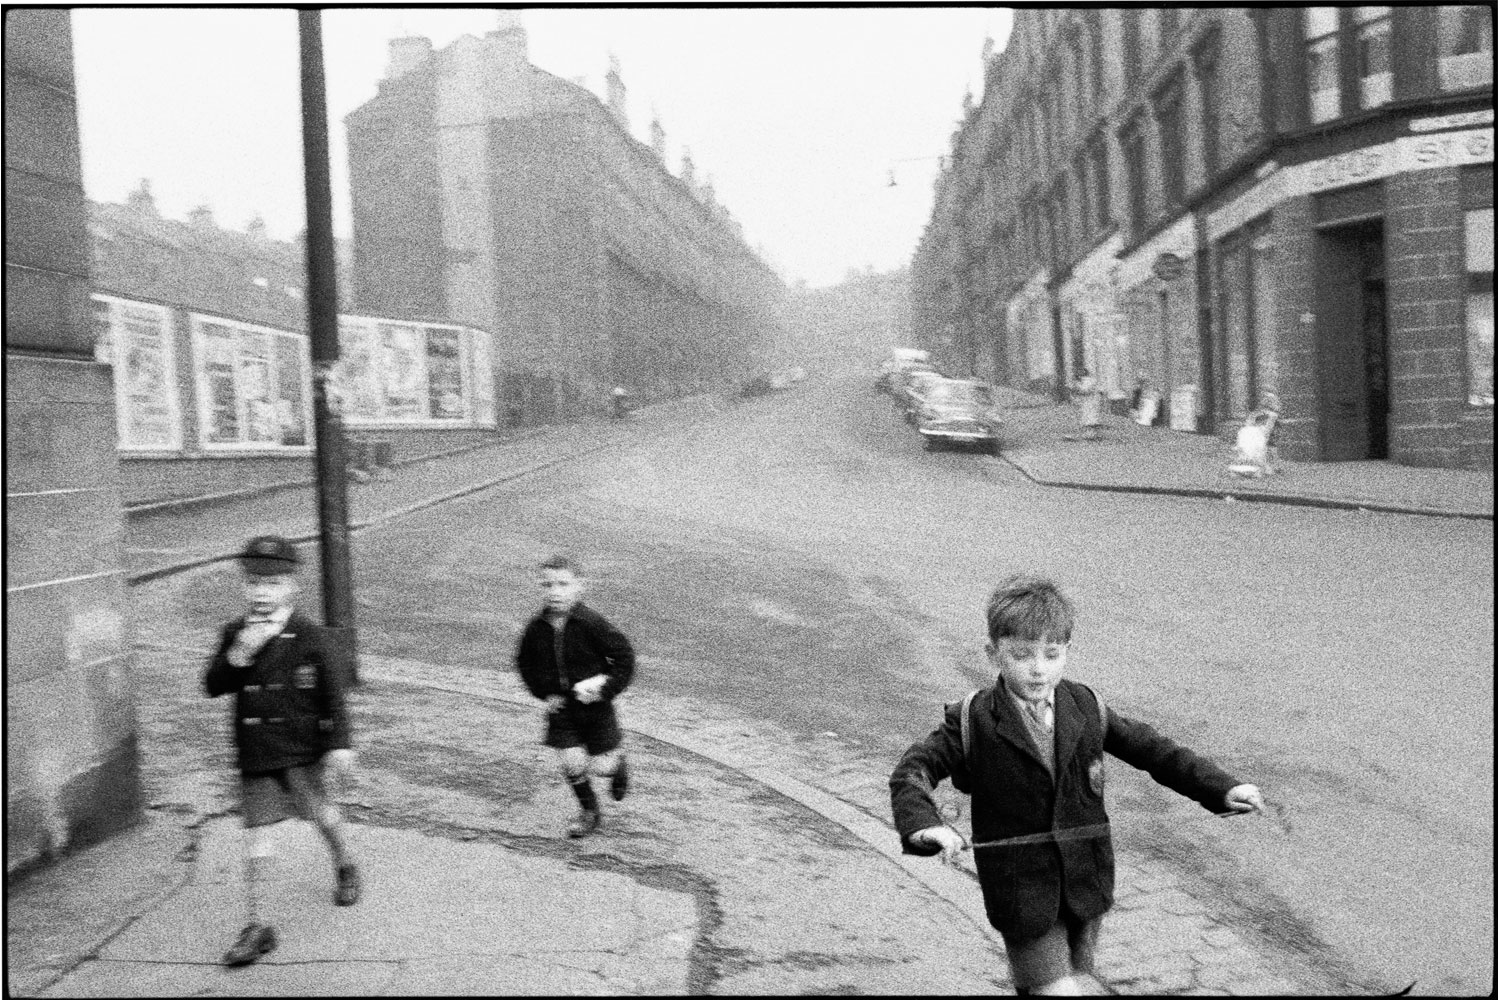 From Bruce Davidson's England/Scotland, 1960, published by Steidl